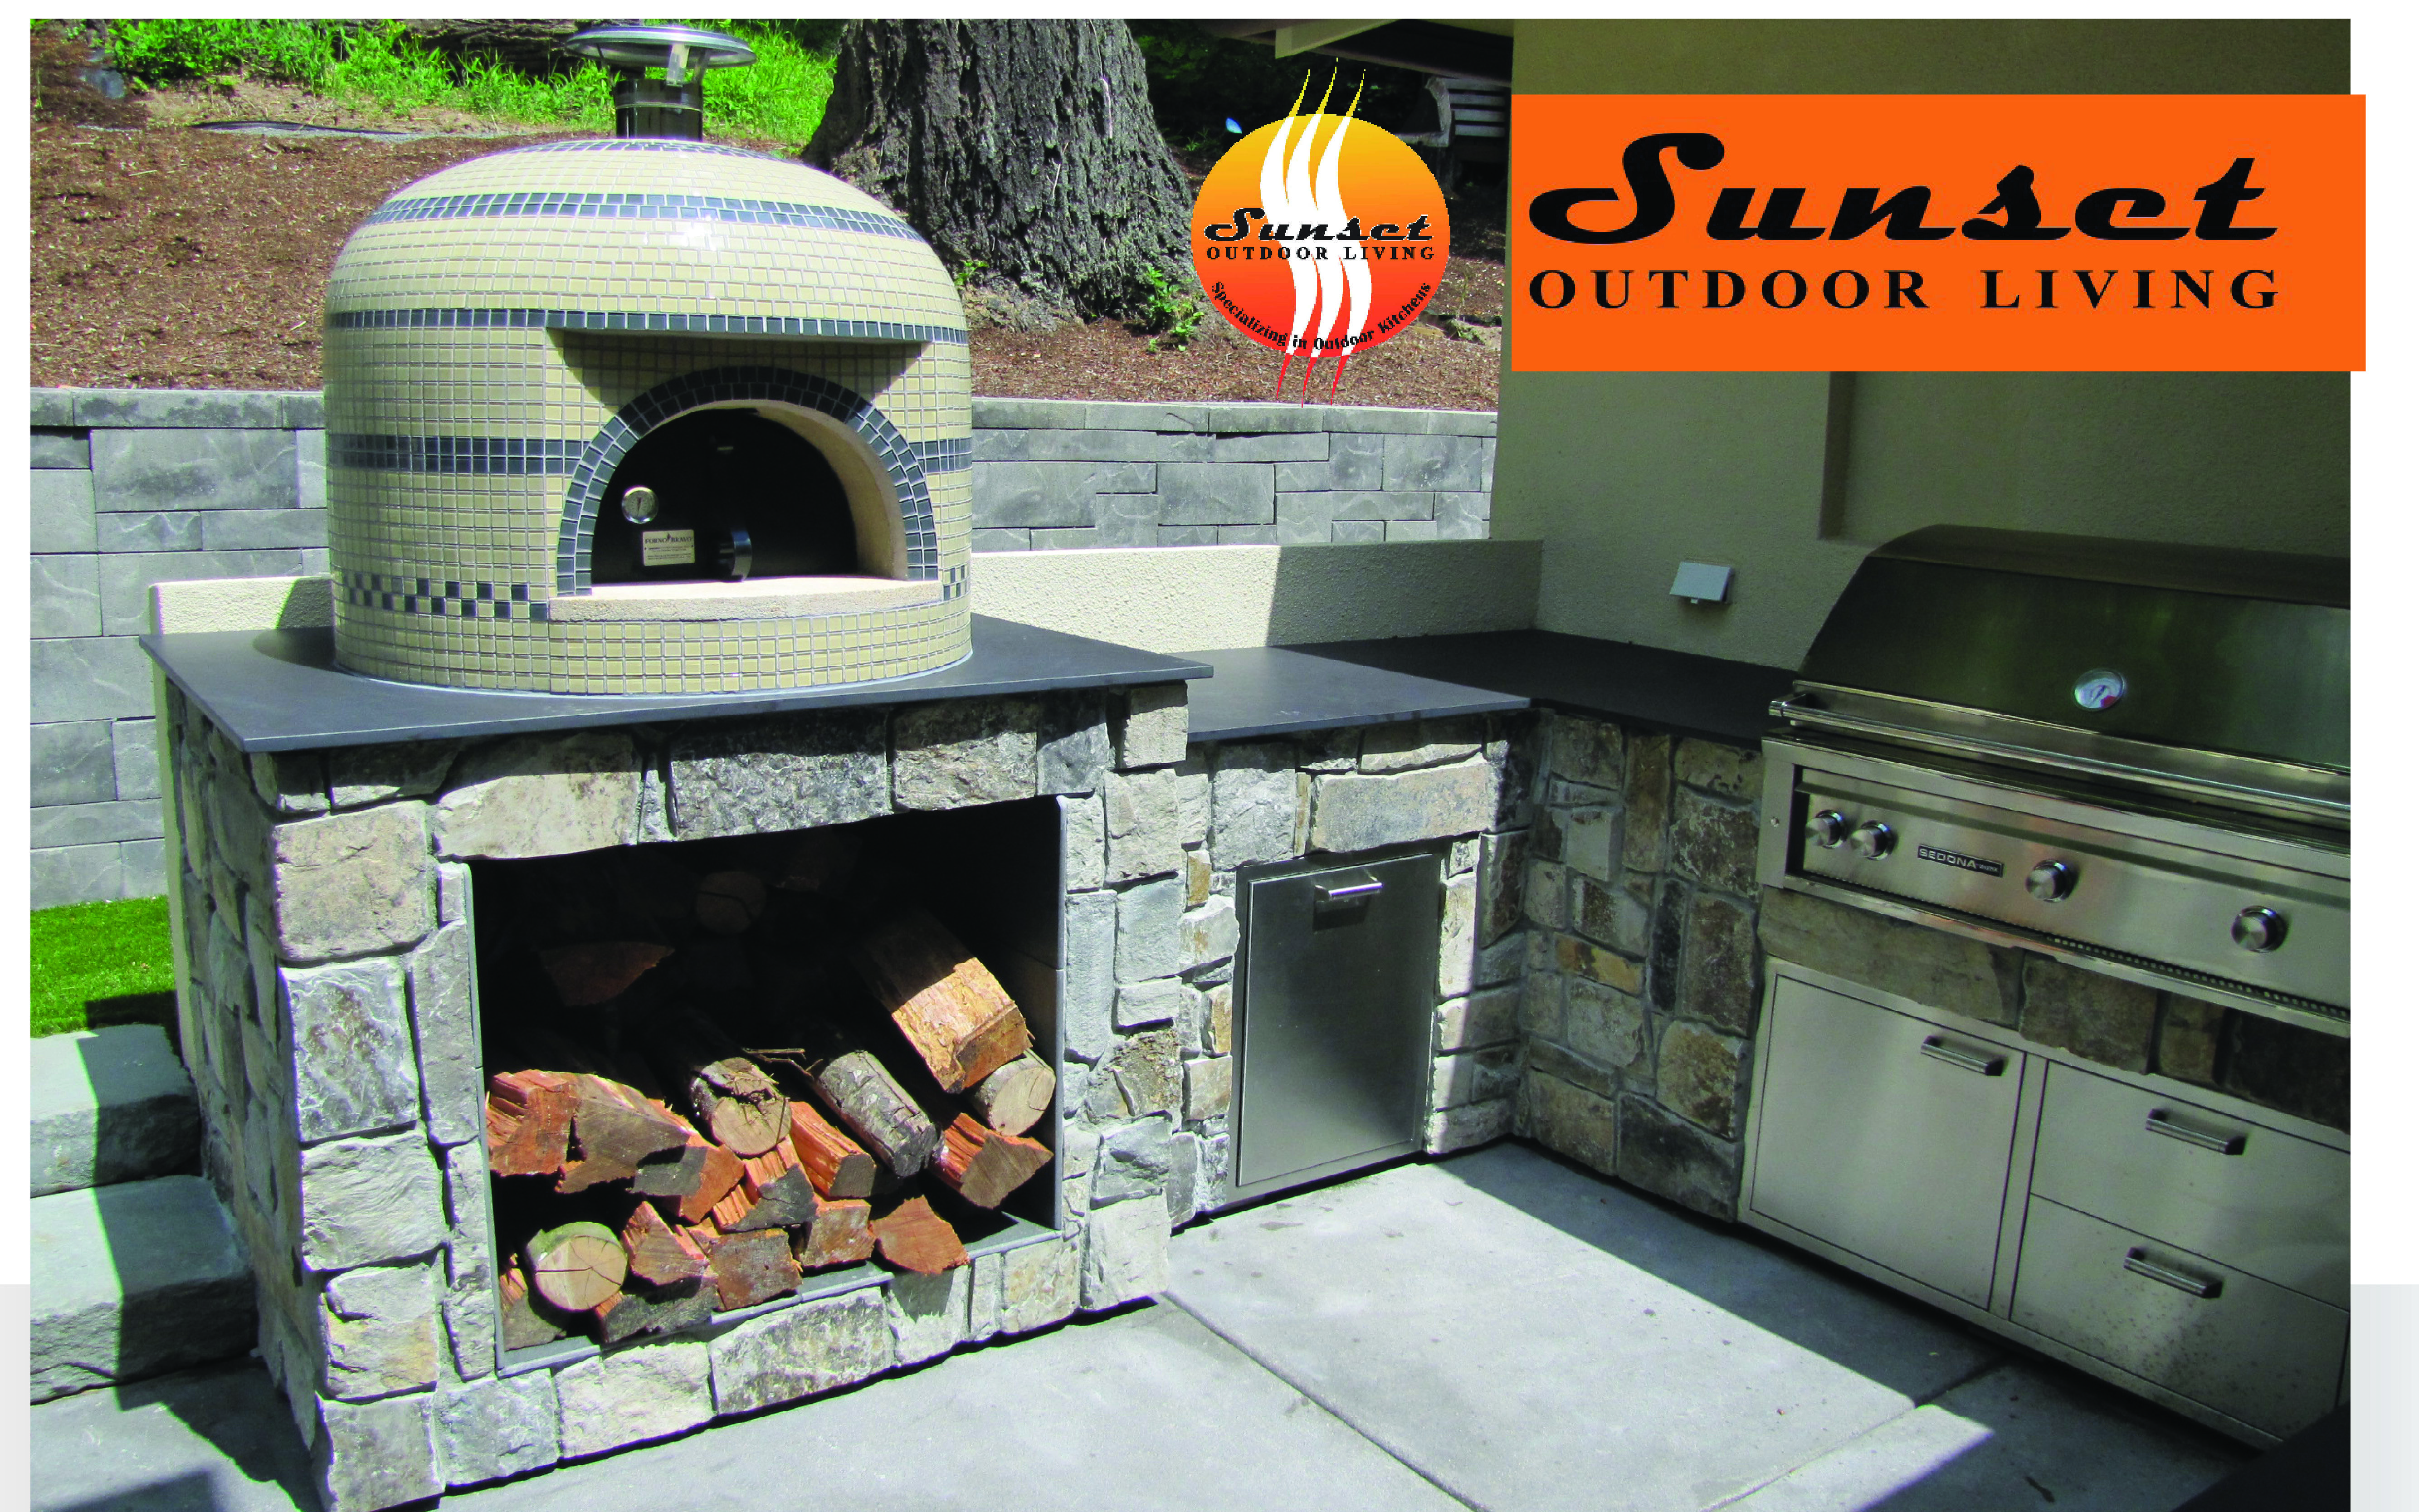 Wood fired pizza oven in this outdoor kitchen woodfiredpizza